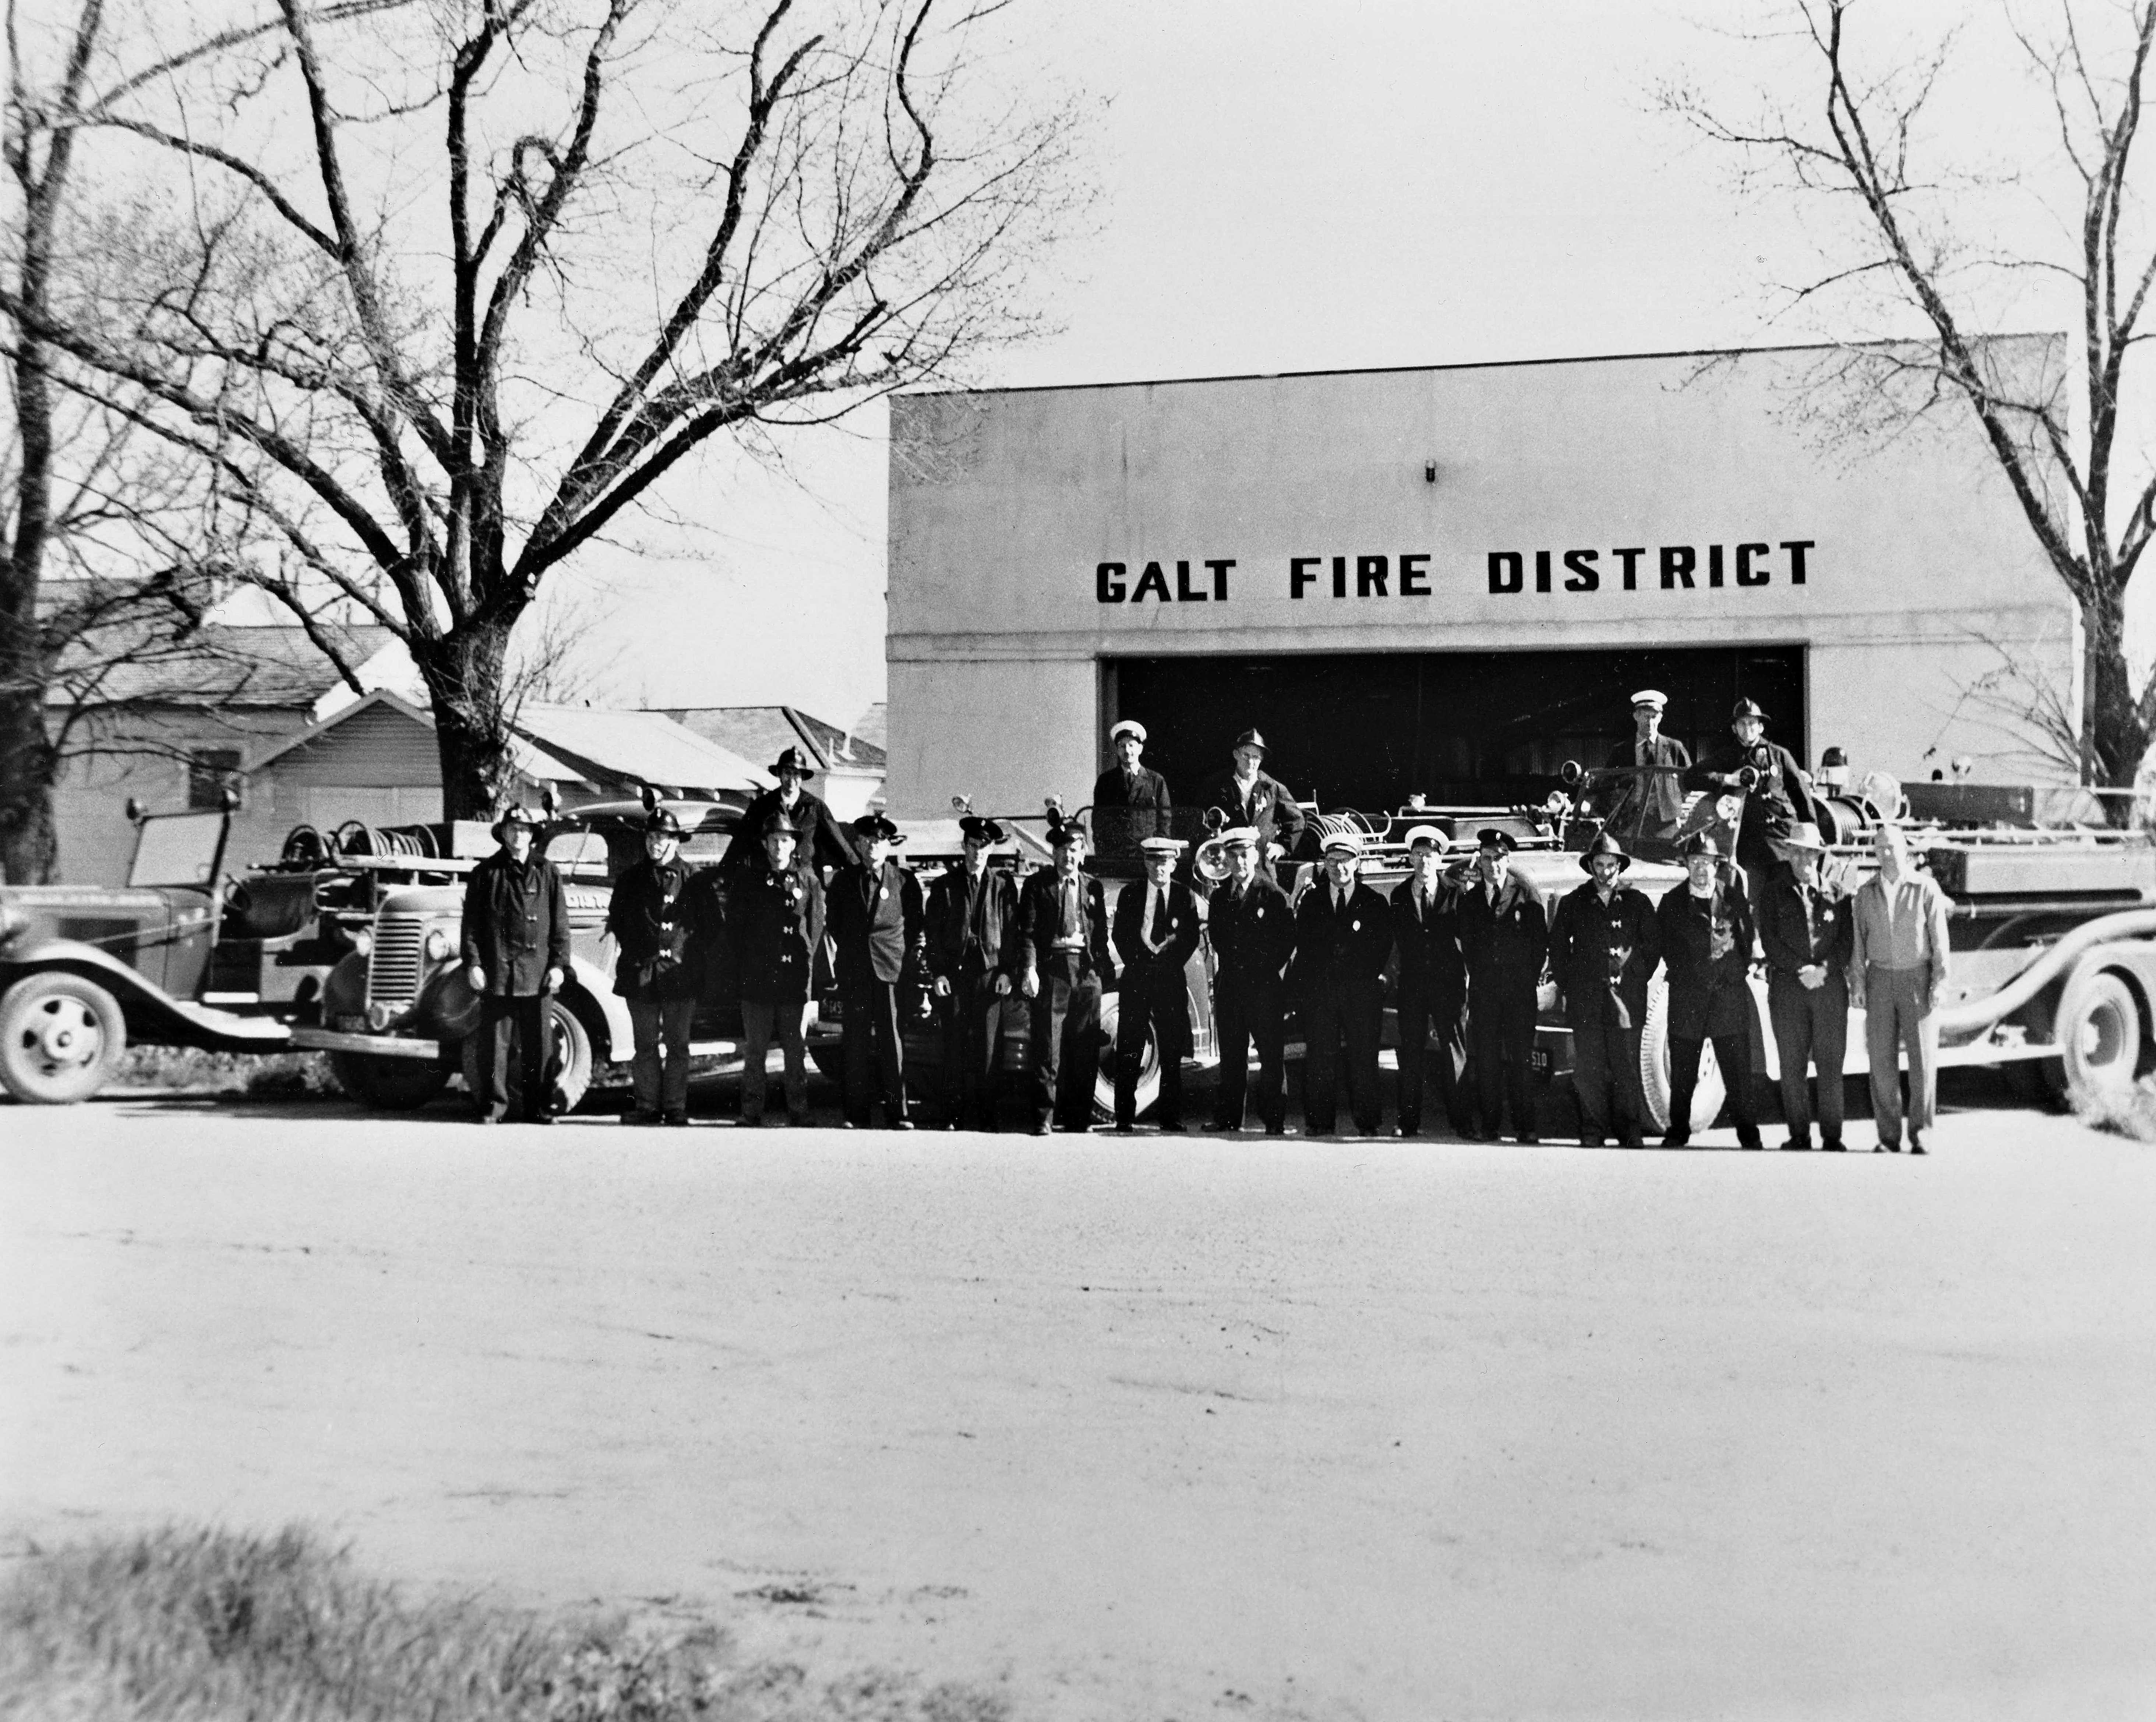 A black and white photograph of the Galt Fire District